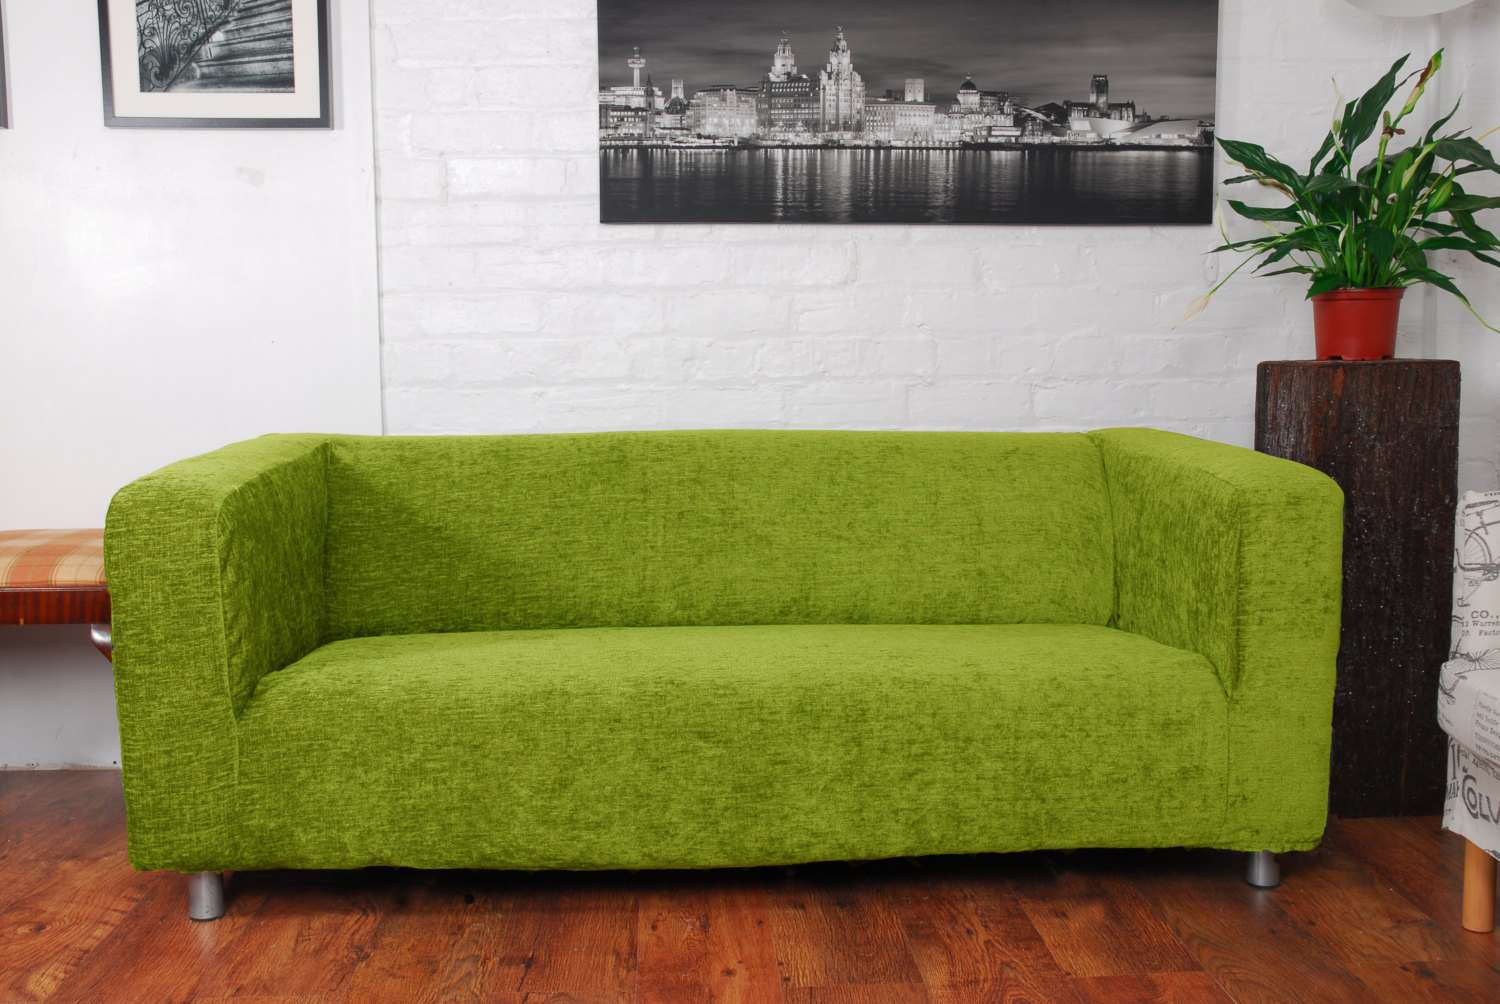 Slip Cover Fit Ikea Klippan Seat Sofa Hipicainteriors